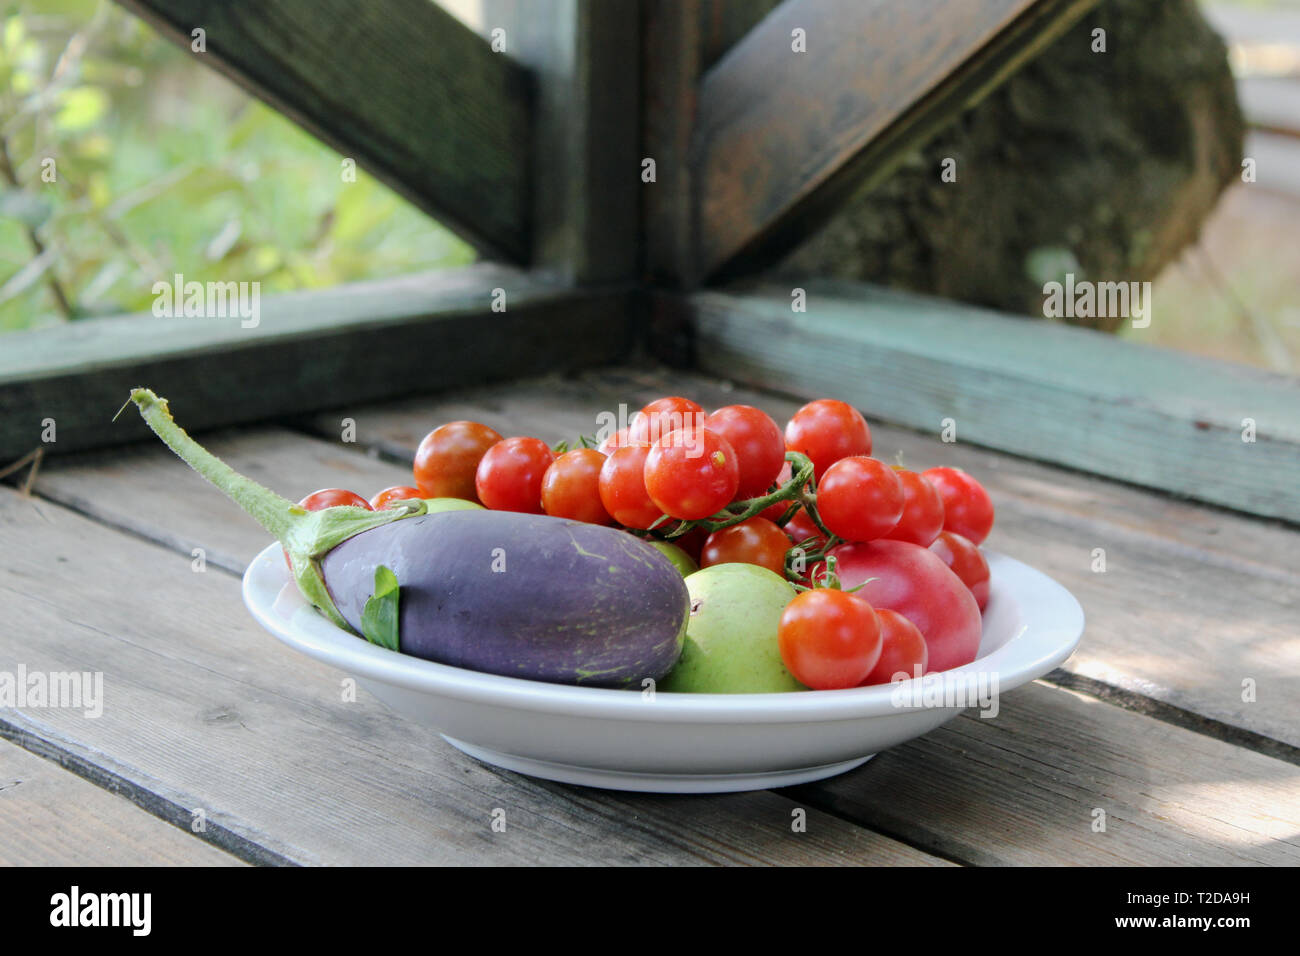 A plate with fresh vegetables and fruits - Stock Image